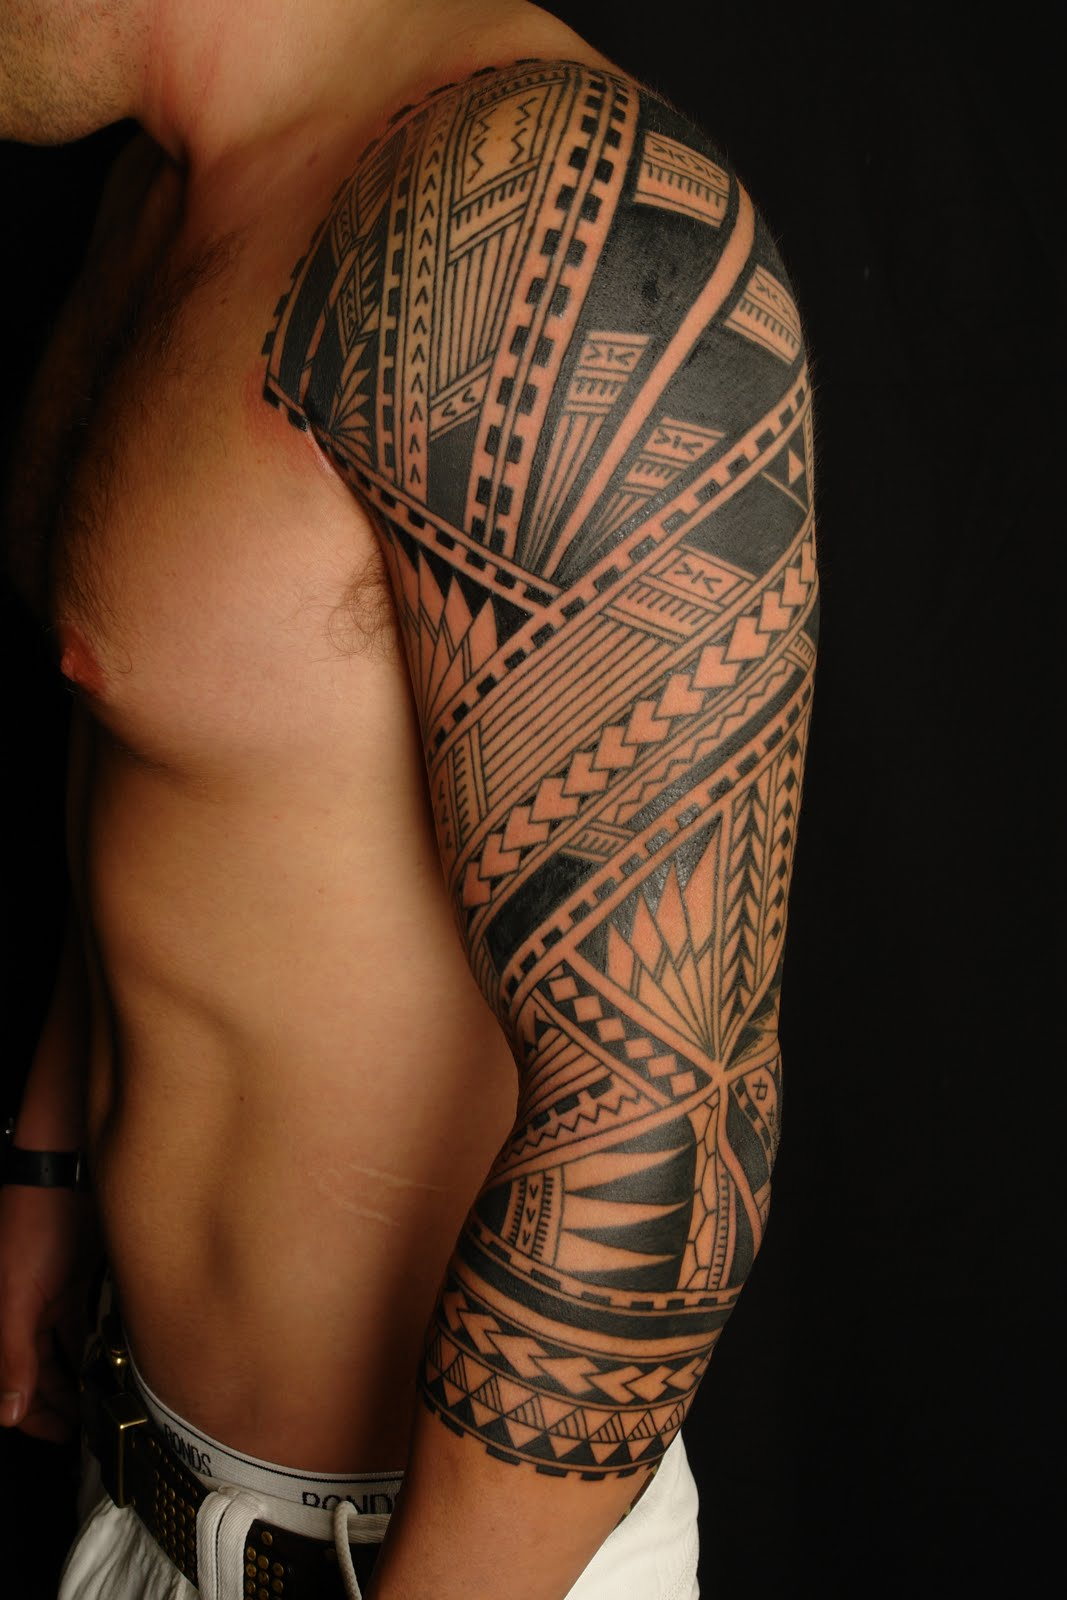 Maori Tattoo Designs - Think Before You Ink